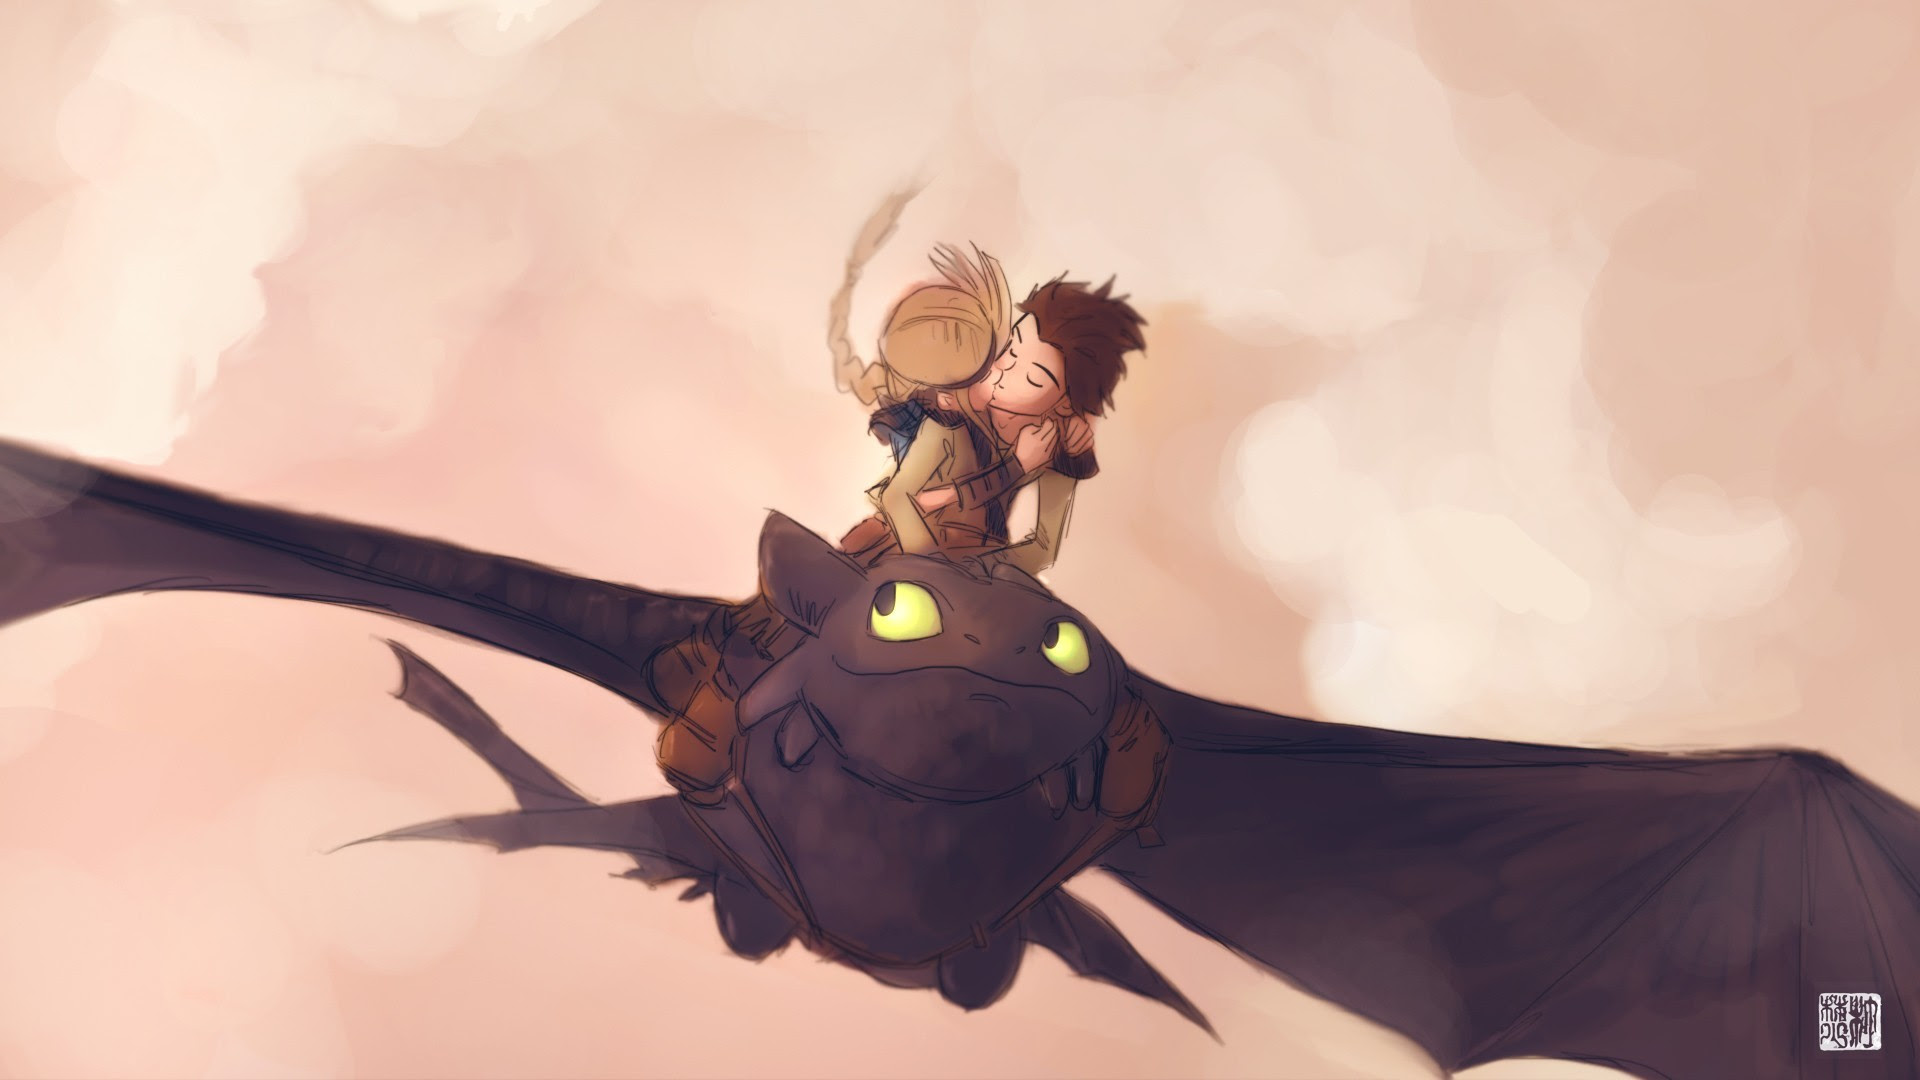 How To Train Your Dragon Desktop Wallpaper Wallpaper High